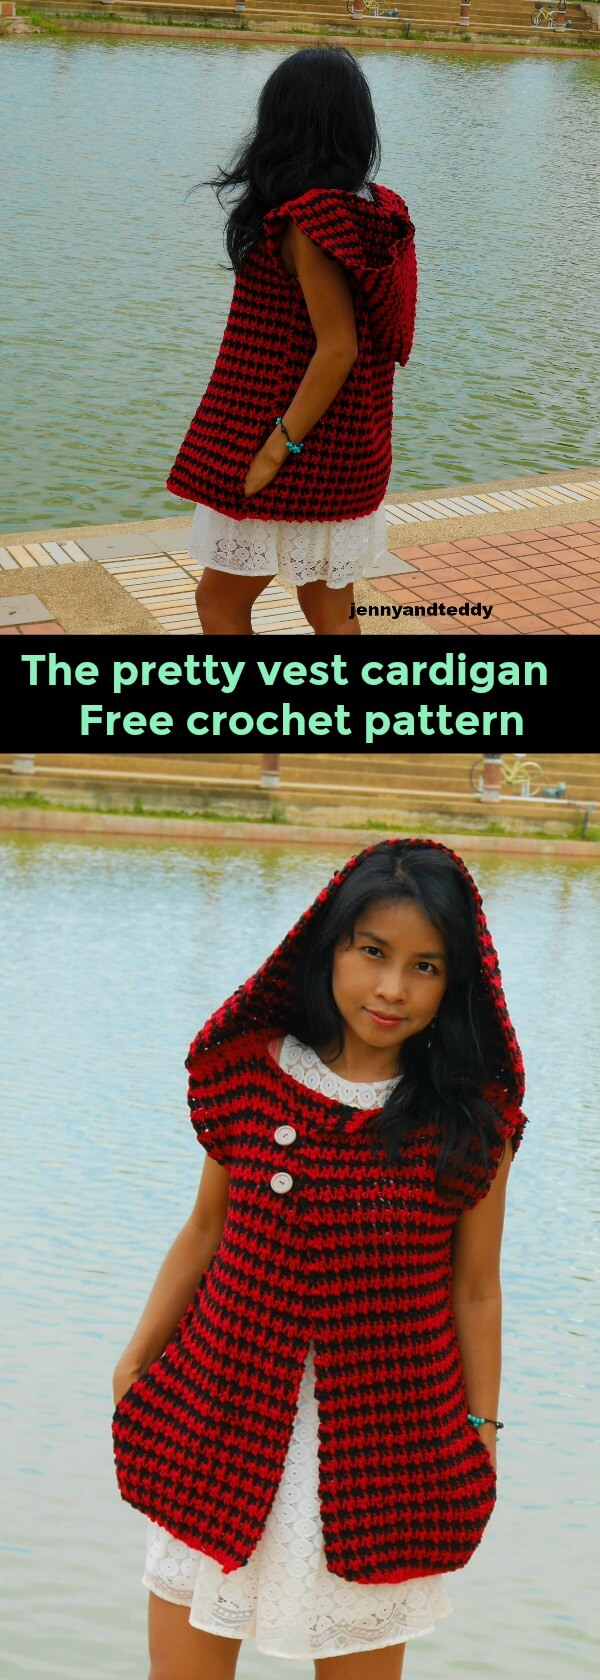 easy crochet hooded vest cardigan free crochet pattern by jennyandteddy